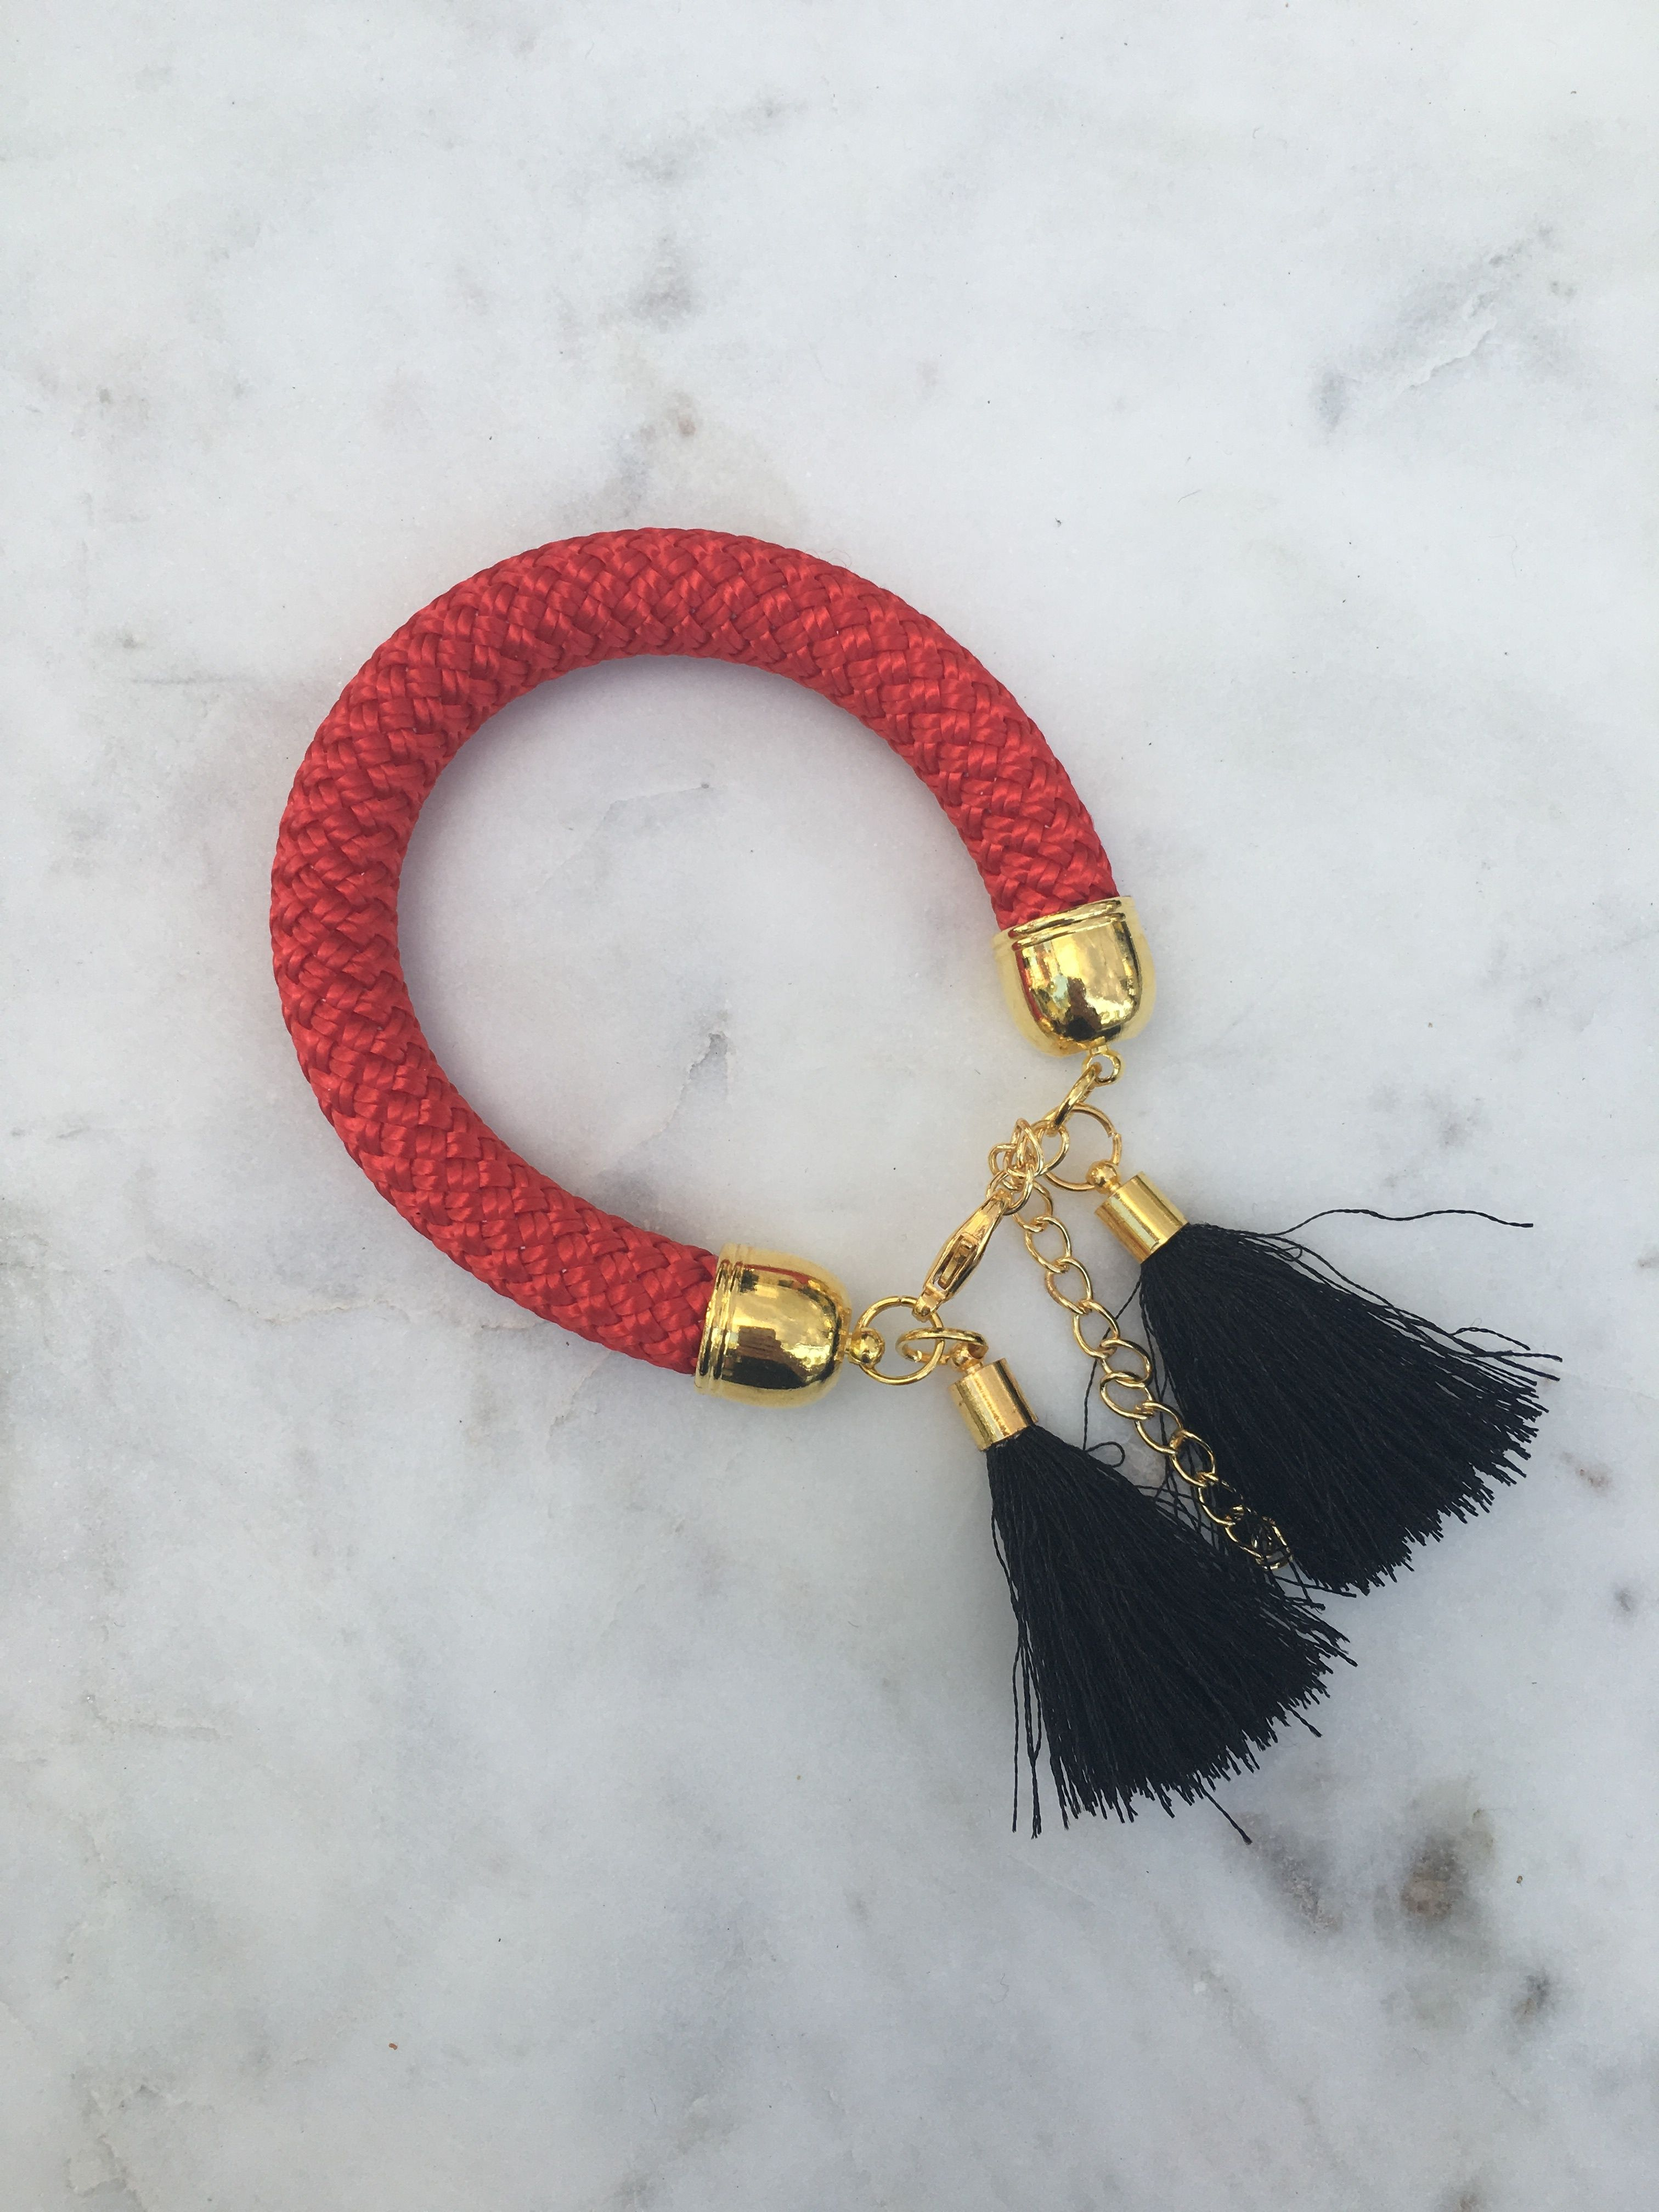 One-of-a-kind tassel bracelets available at Uppermoda